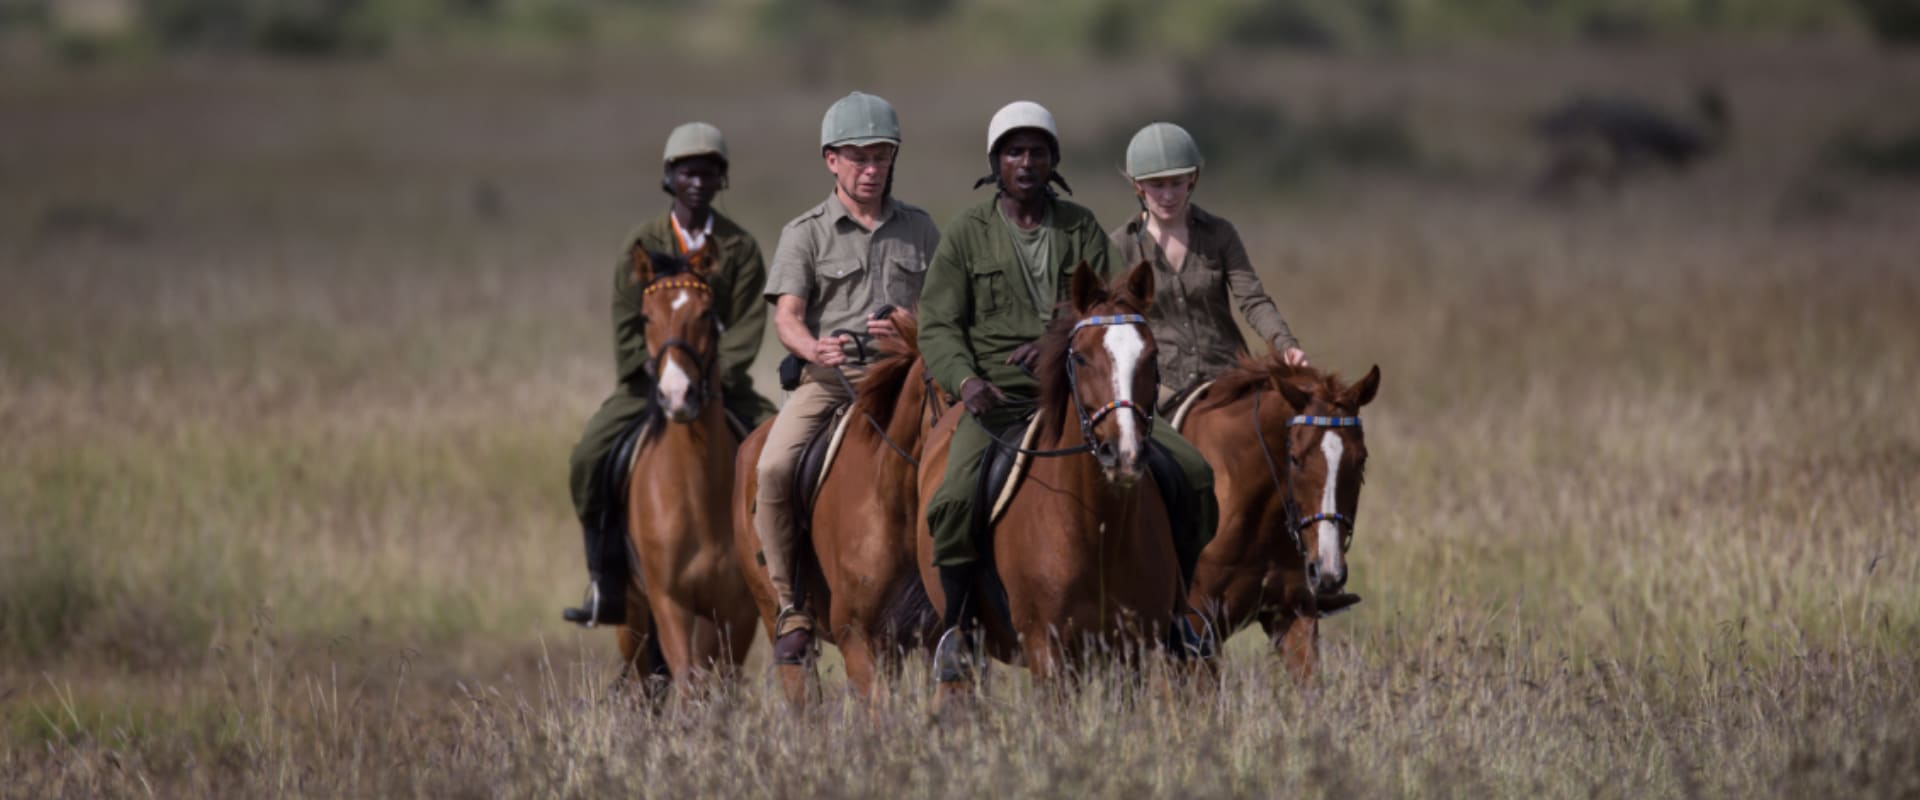 Experience the unique exhilaration of horse riding on the plains